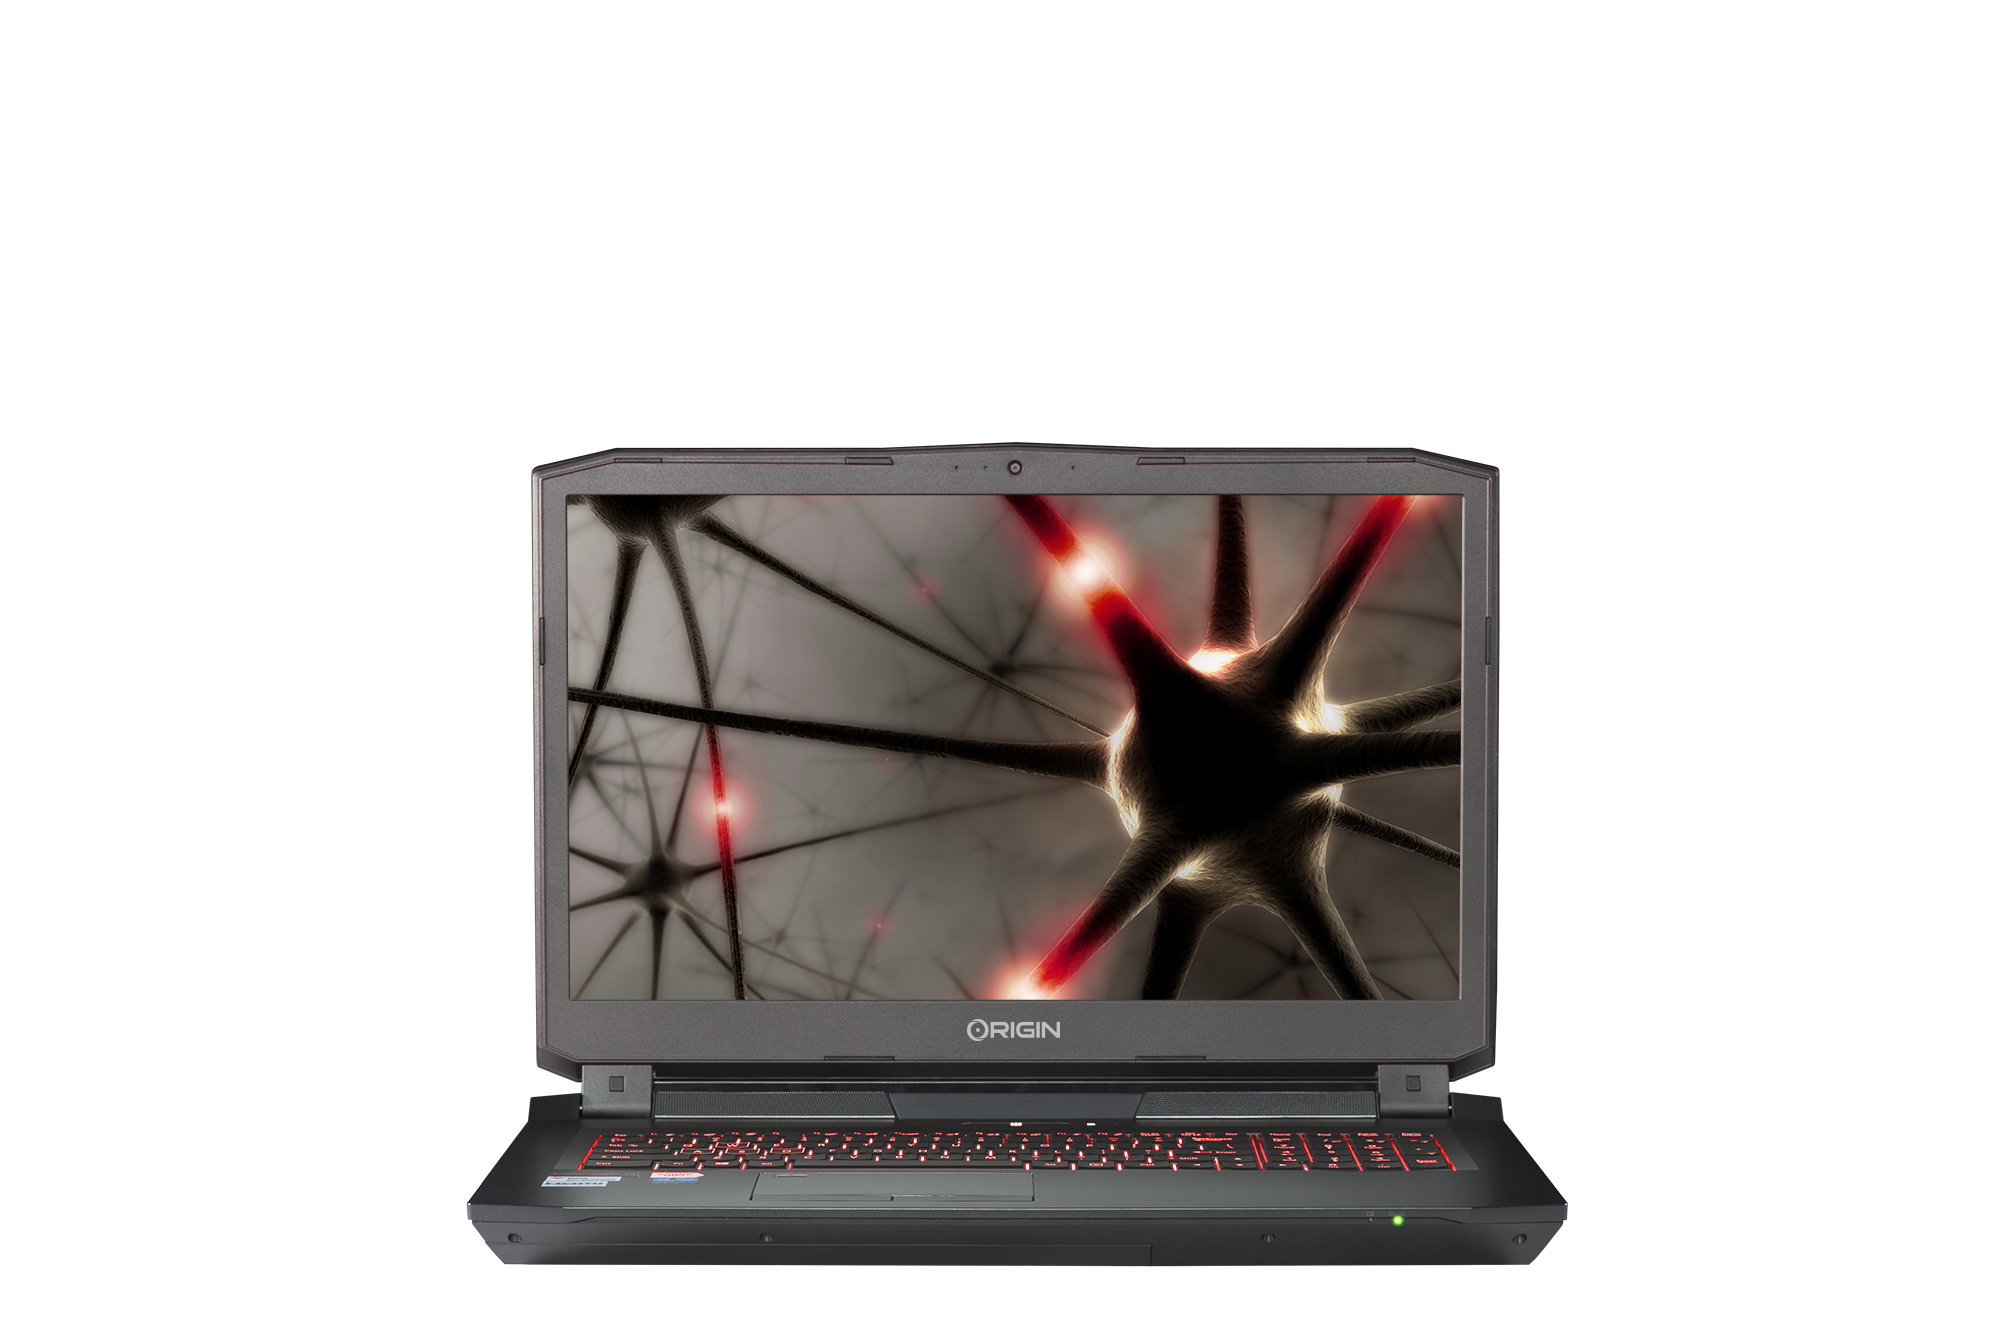 The EON17-X Gaming Laptop Receives an Editors' Choice Award from Laptop Mag